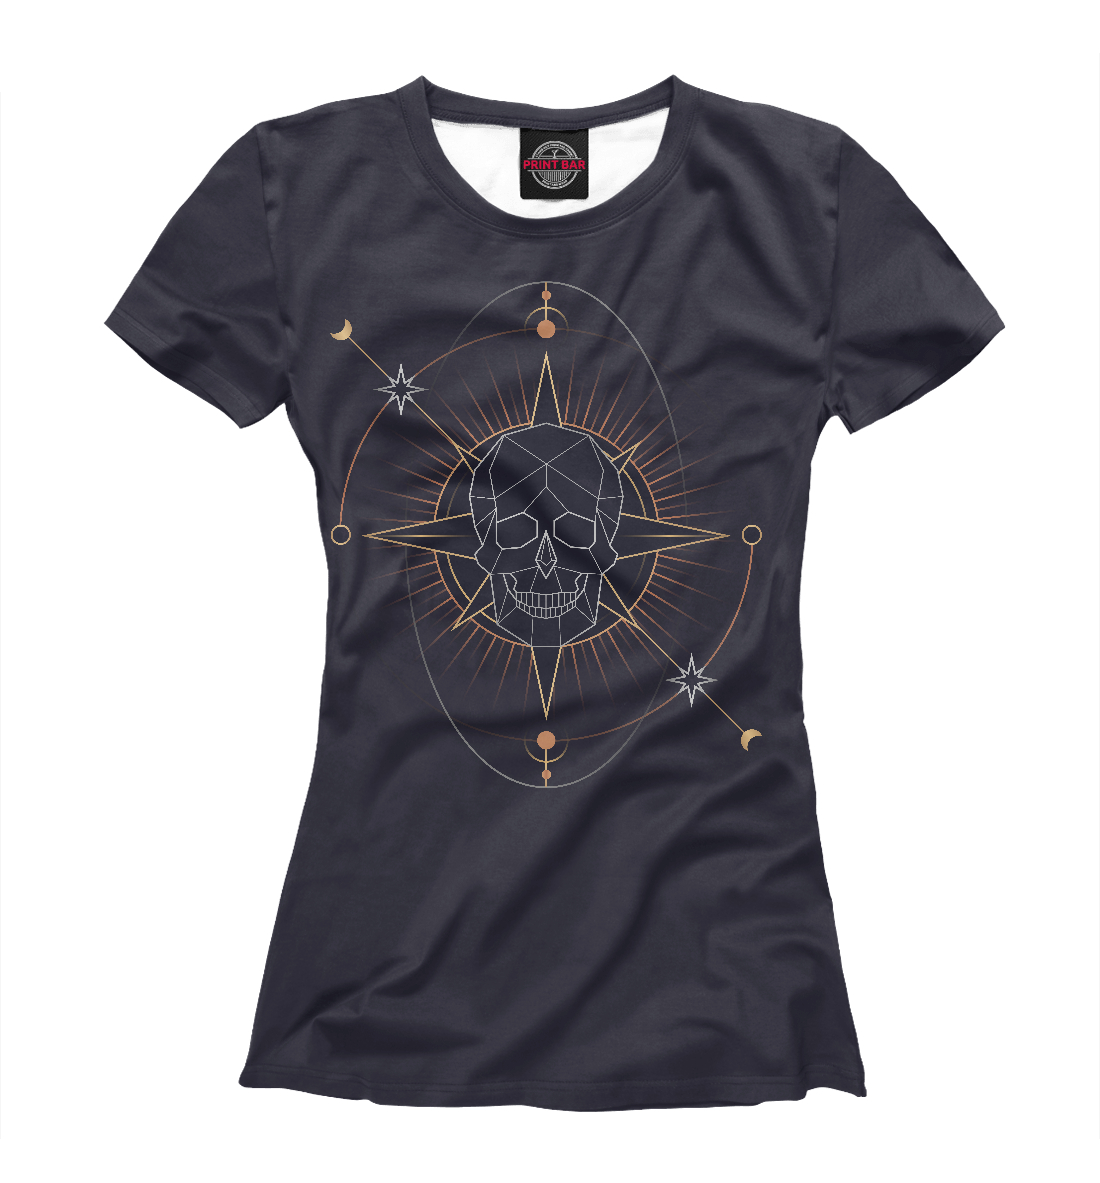 Купить Geometric astrological skull, Printbar, Футболки, HIP-579403-fut-1